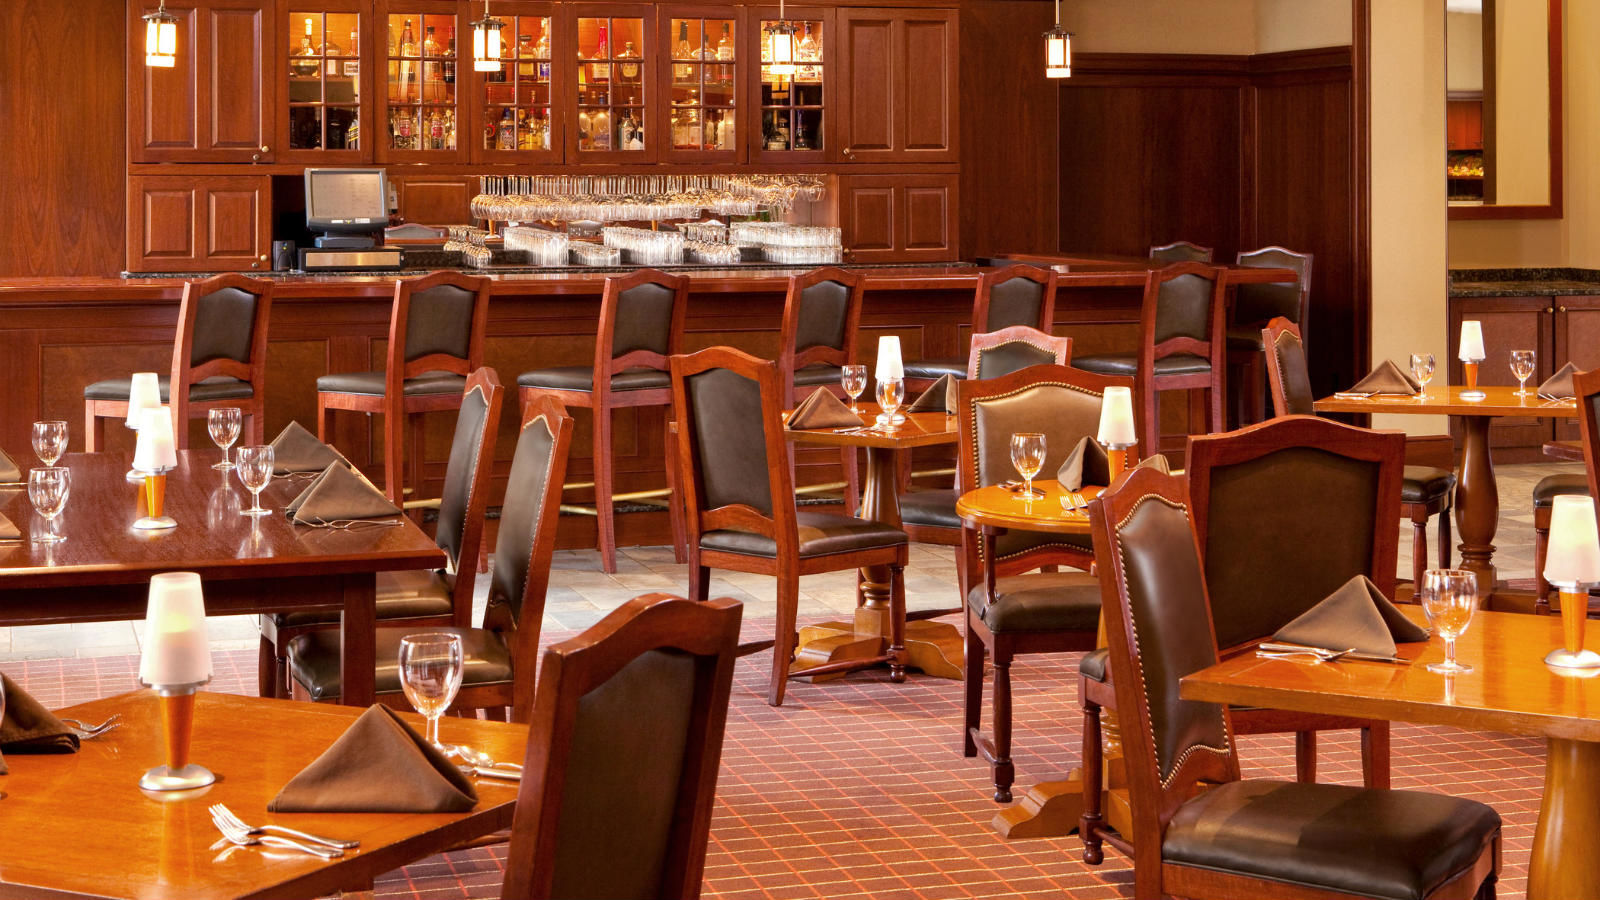 Toasted Barrel Restaurant | Sheraton Tarrytown Hotel